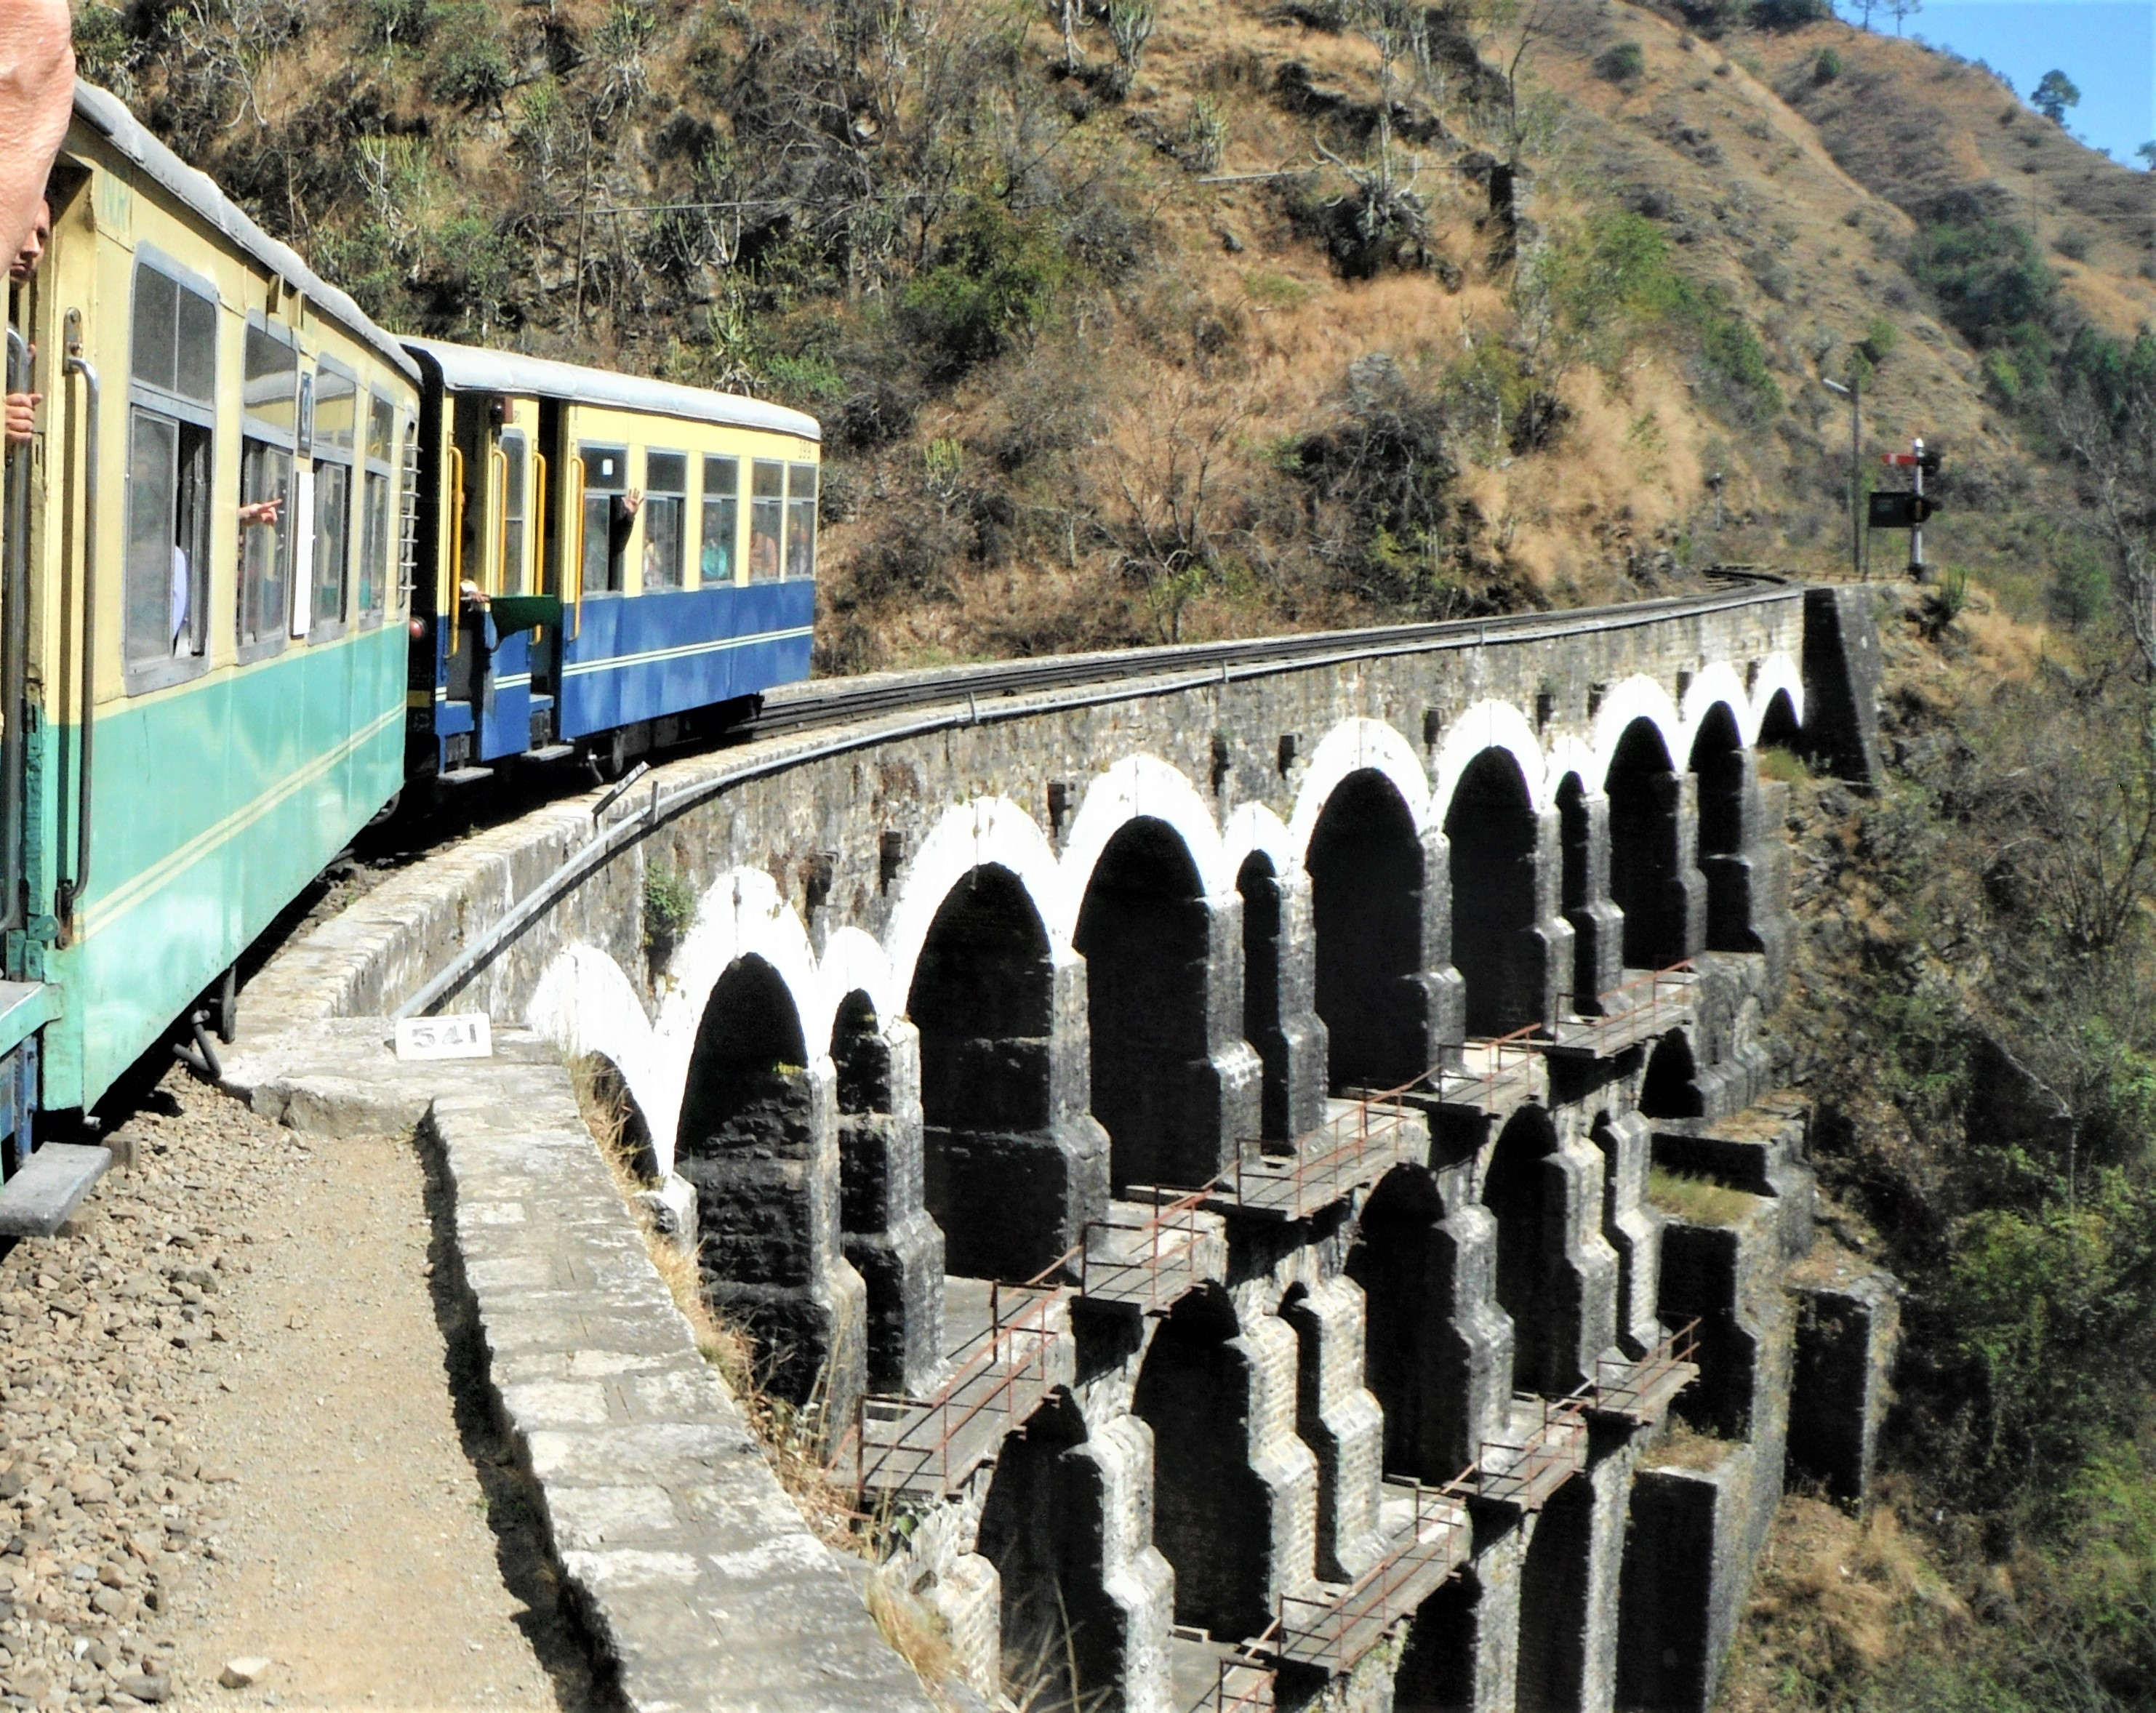 On the way to Shimla in northern India